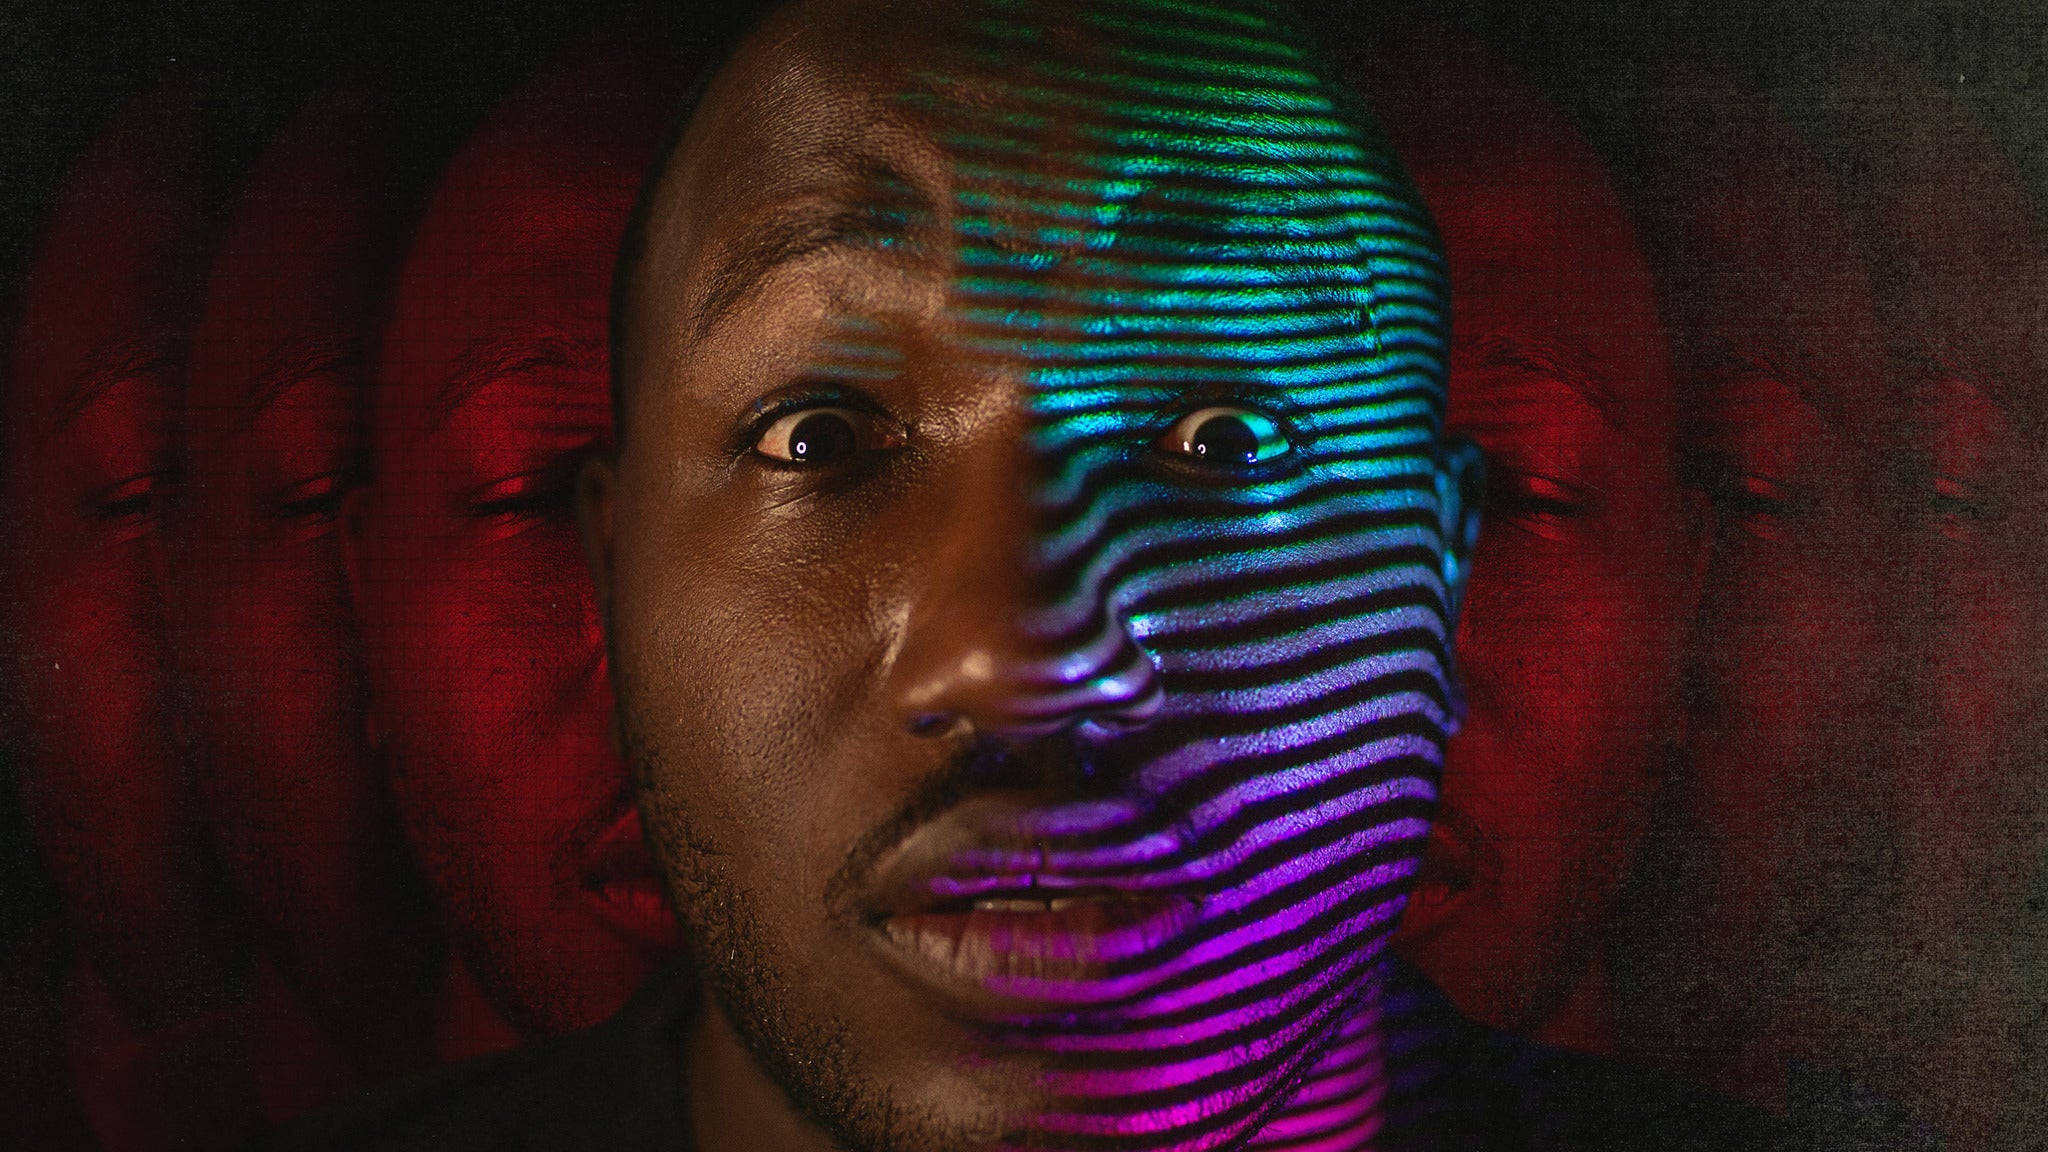 SORRY, THIS EVENT IS NO LONGER ACTIVE<br>Hannibal Buress at Blue Note Hawaii - Honolulu, HI 96815